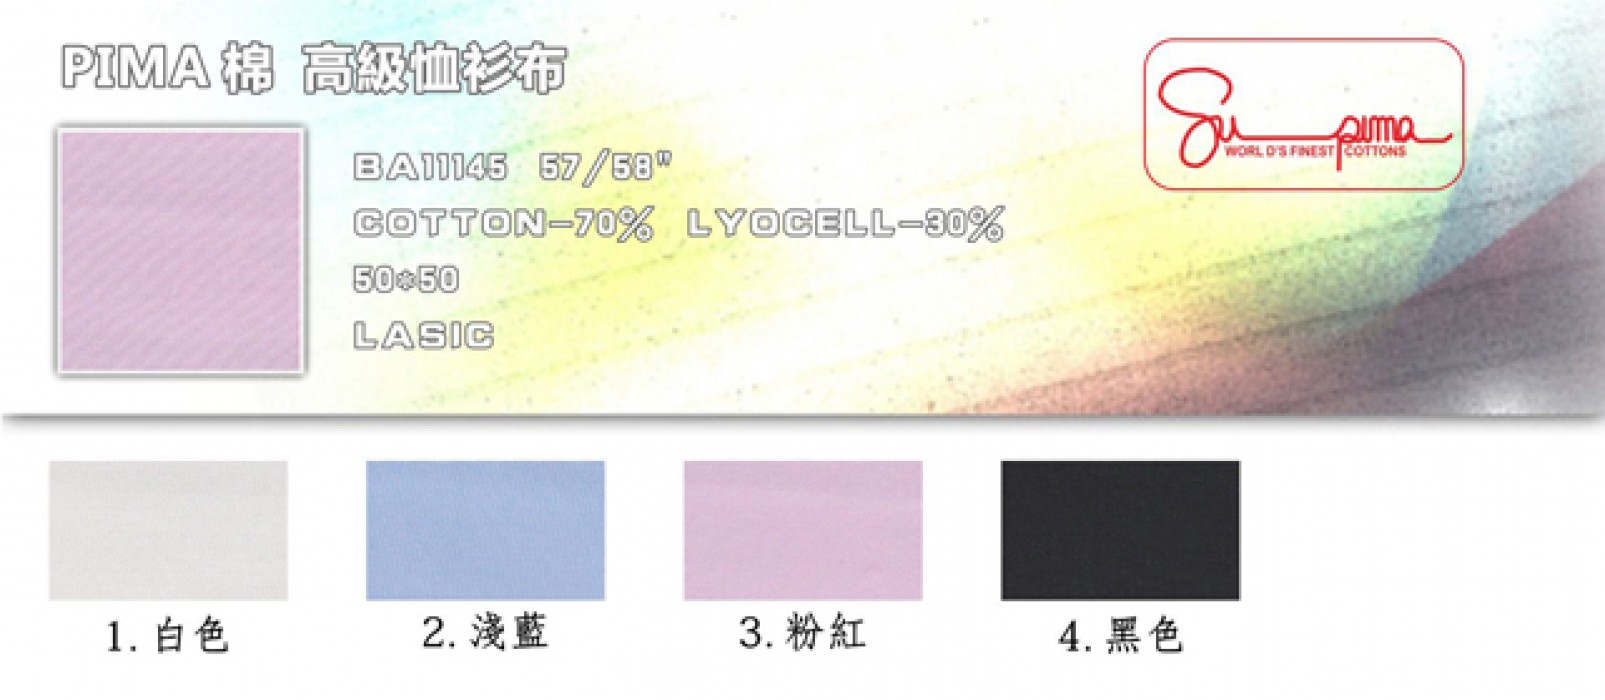 FIMA棉 高級恤衫布  50*50  BA11145 70%cotton  30%lyocell